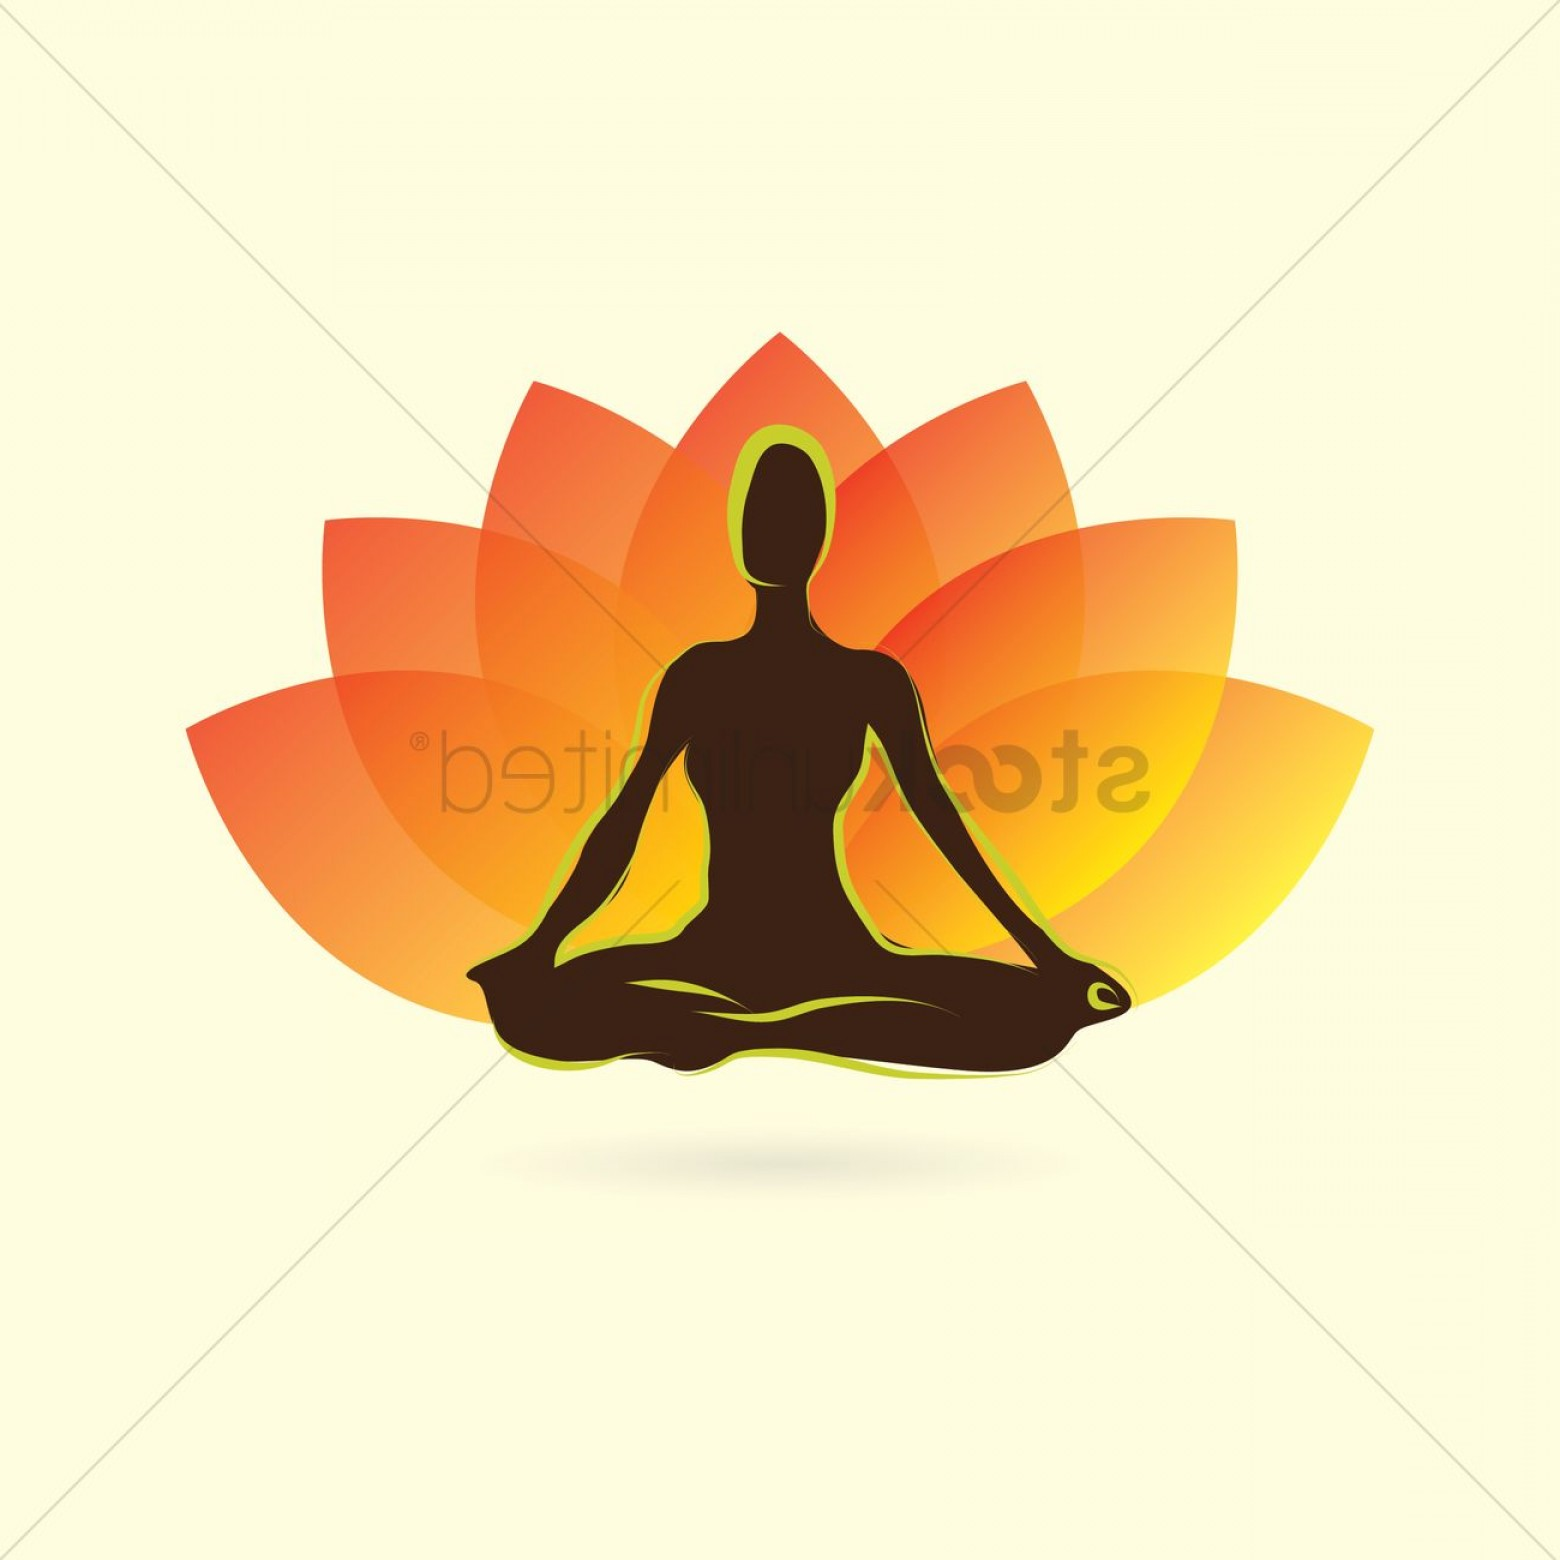 Yoga Vector Silhouette SVG: Woman Silhouette Practising Yoga In Lotus Pose